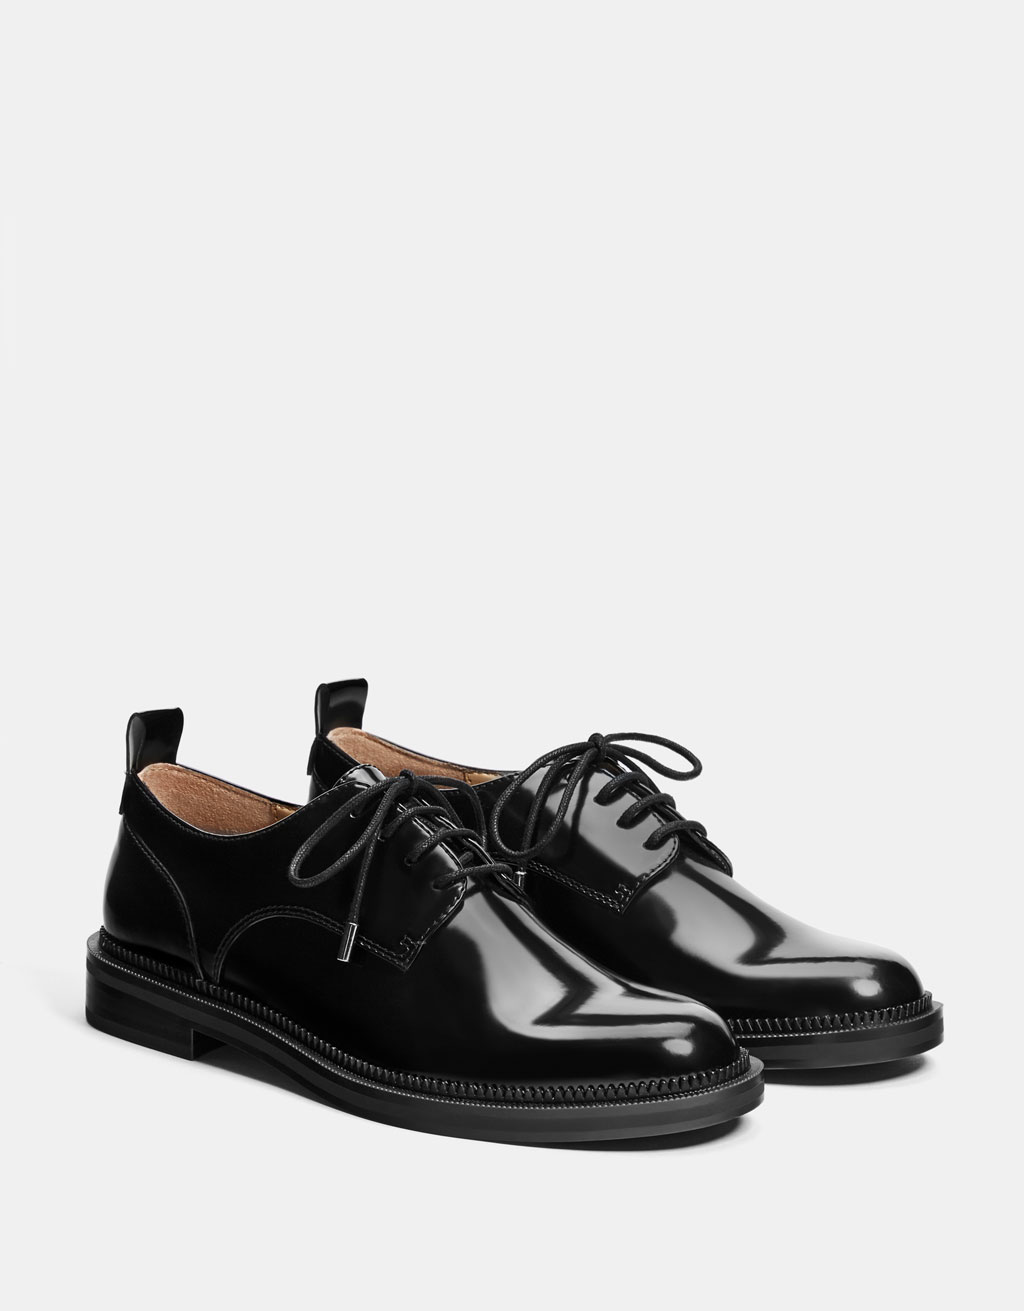 Black derby dress shoes